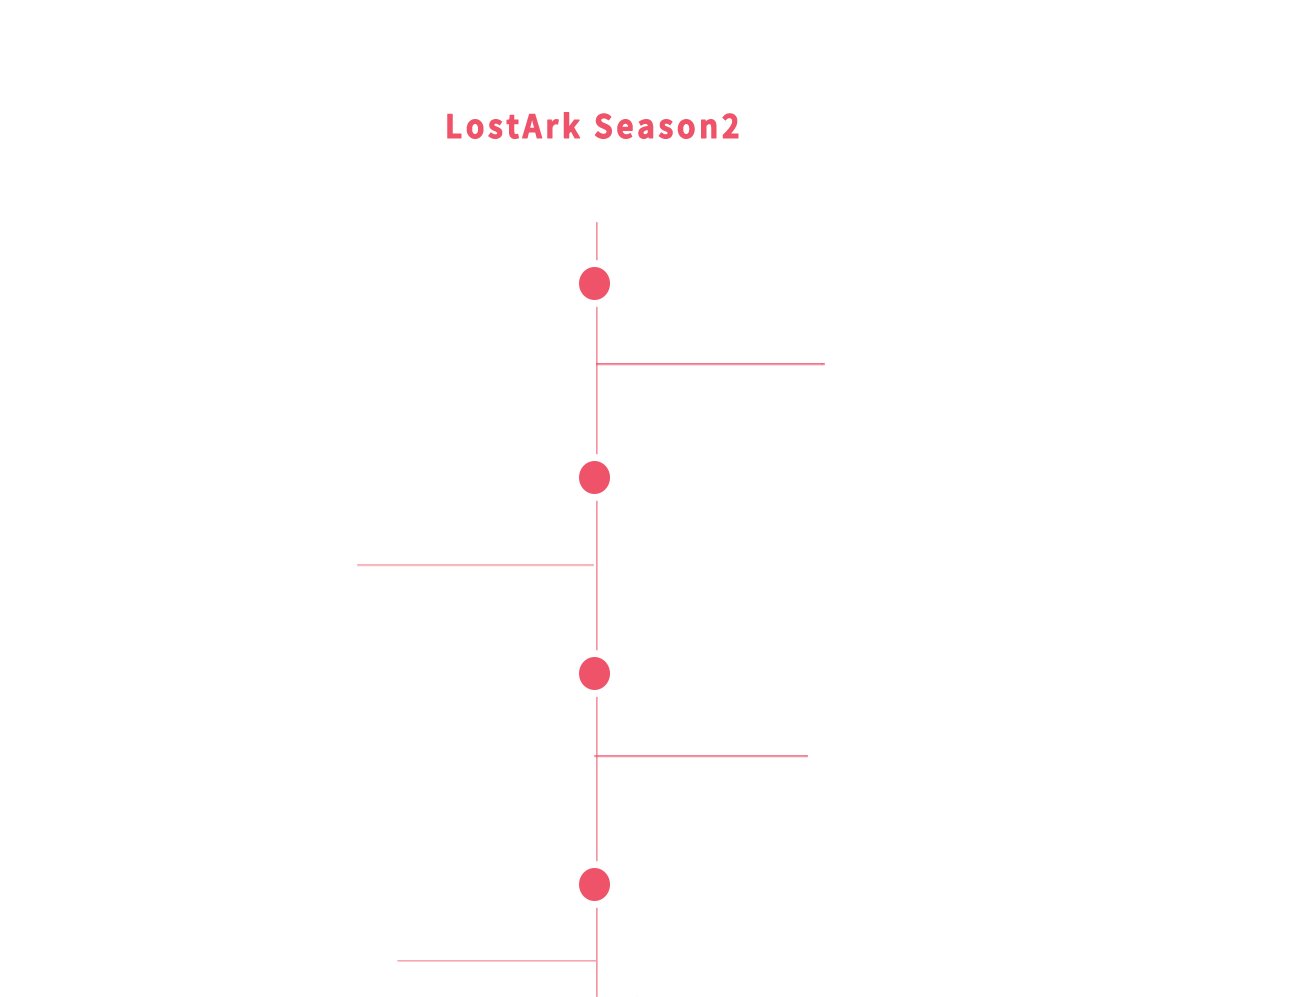 lostark_right_contents_lists__1_.png